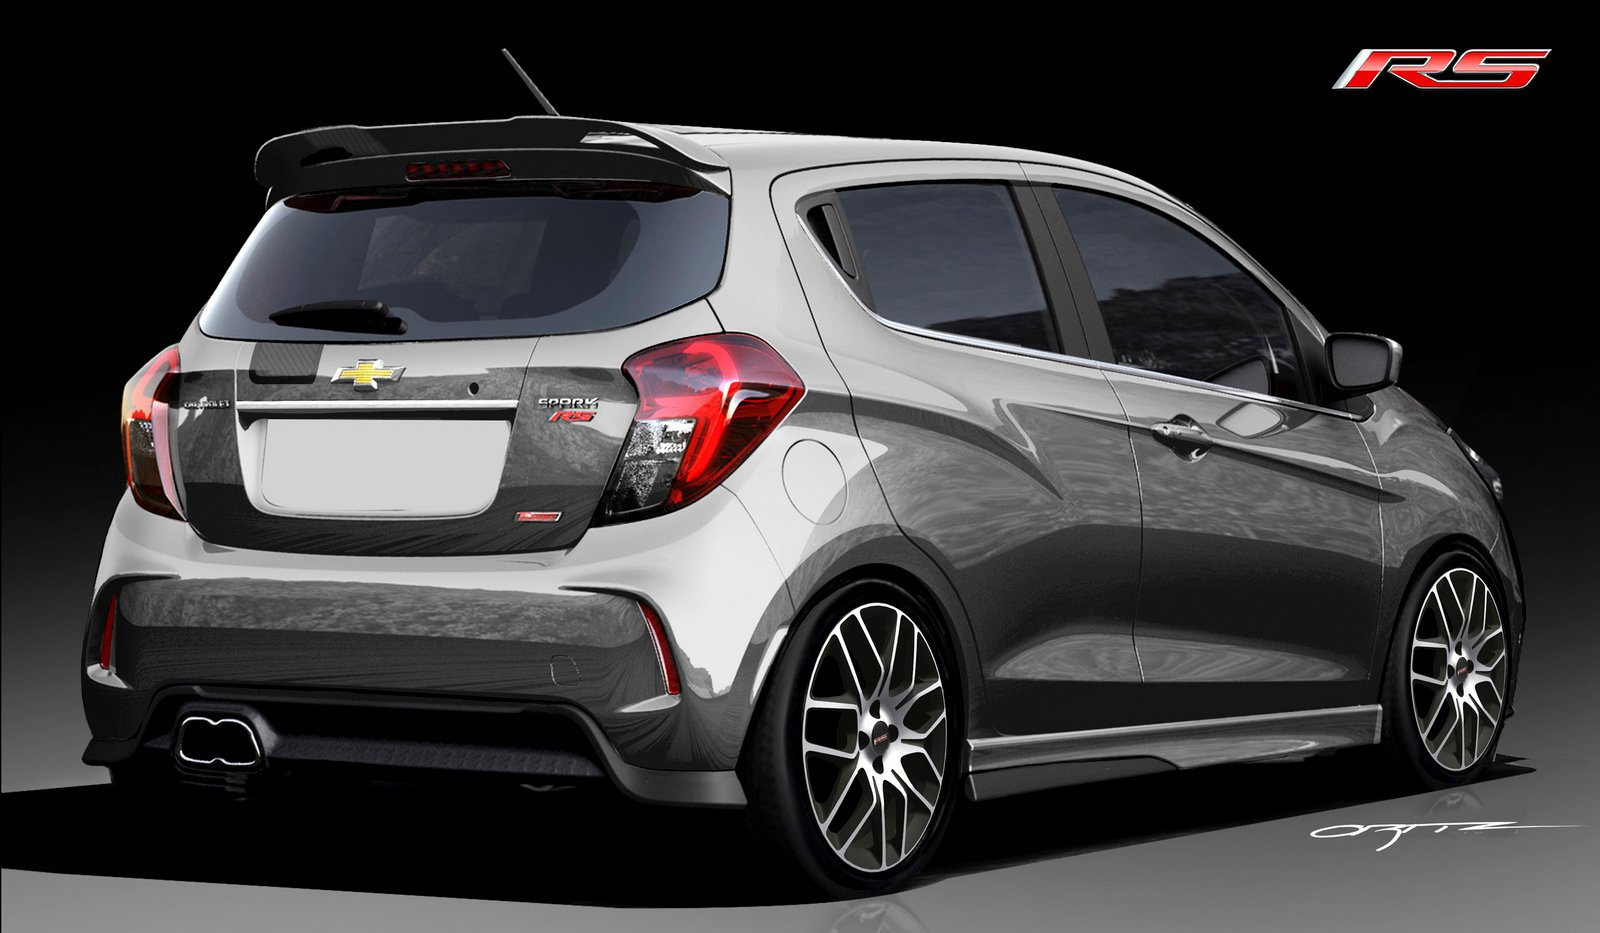 Chevrolet Spark Rs Revealed For Sema Could A Hot Holden